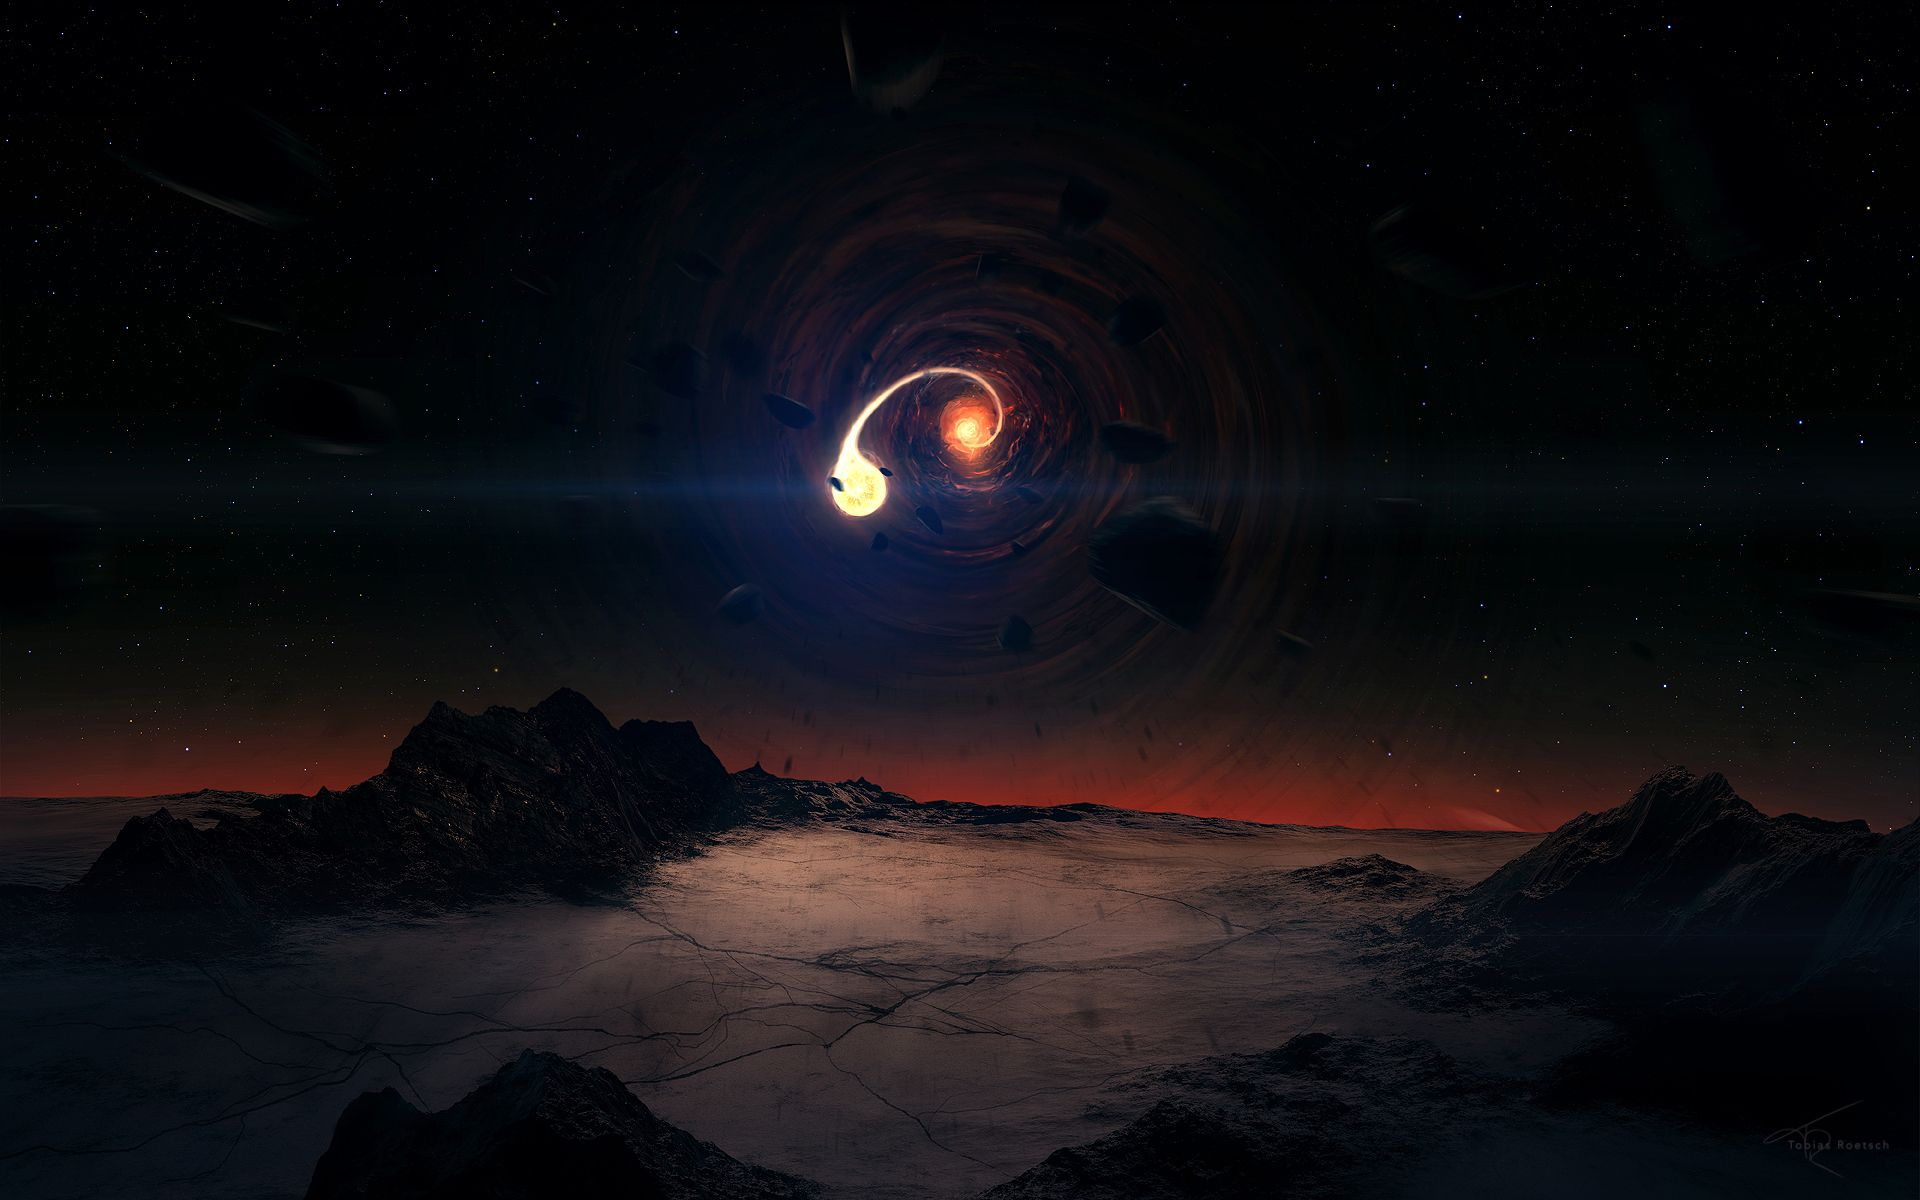 black hole wallpapers hd backgrounds images pics photos free hd wallpapers pinterest hd wallpaper wallpaper and desktop backgrounds